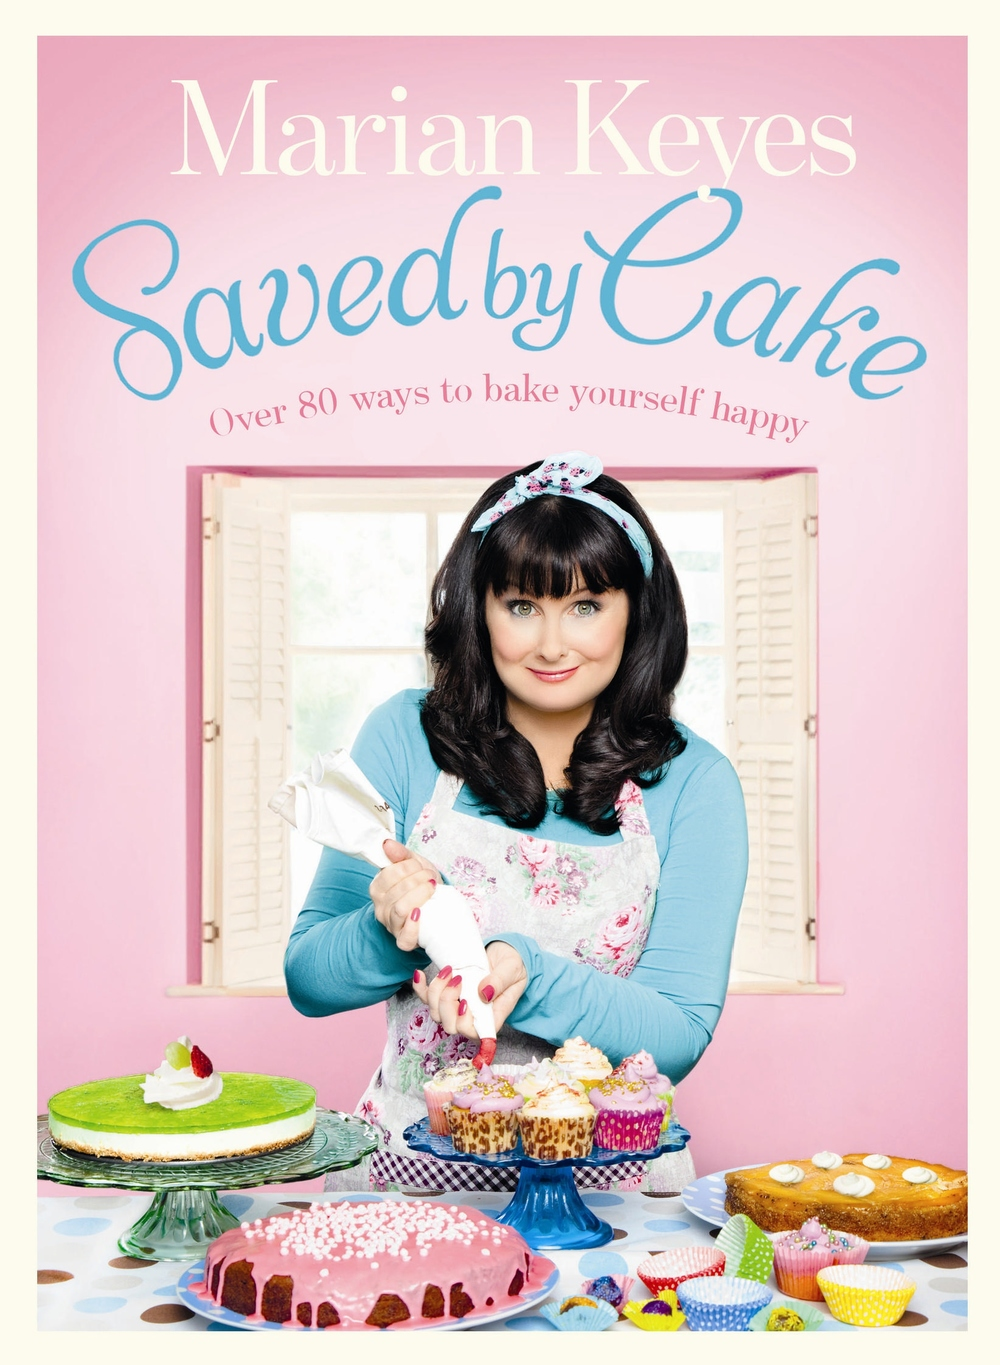 Saved by Cake - Marian Keyes Photography Alistair Richardson